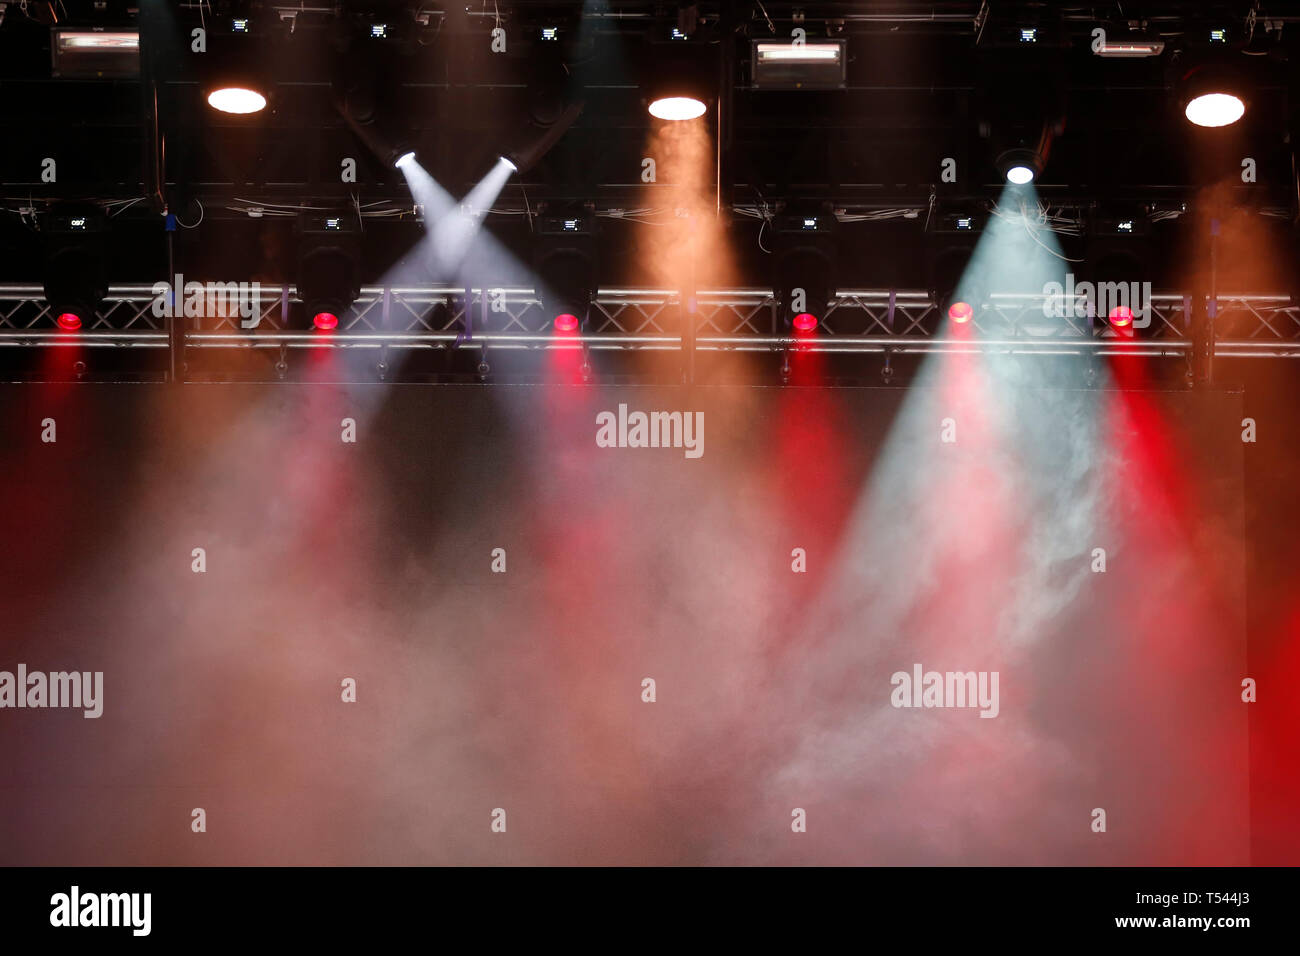 Concert spotlights.Concert spotlights.Red and white rays of powerful projectors on stage - Stock Image